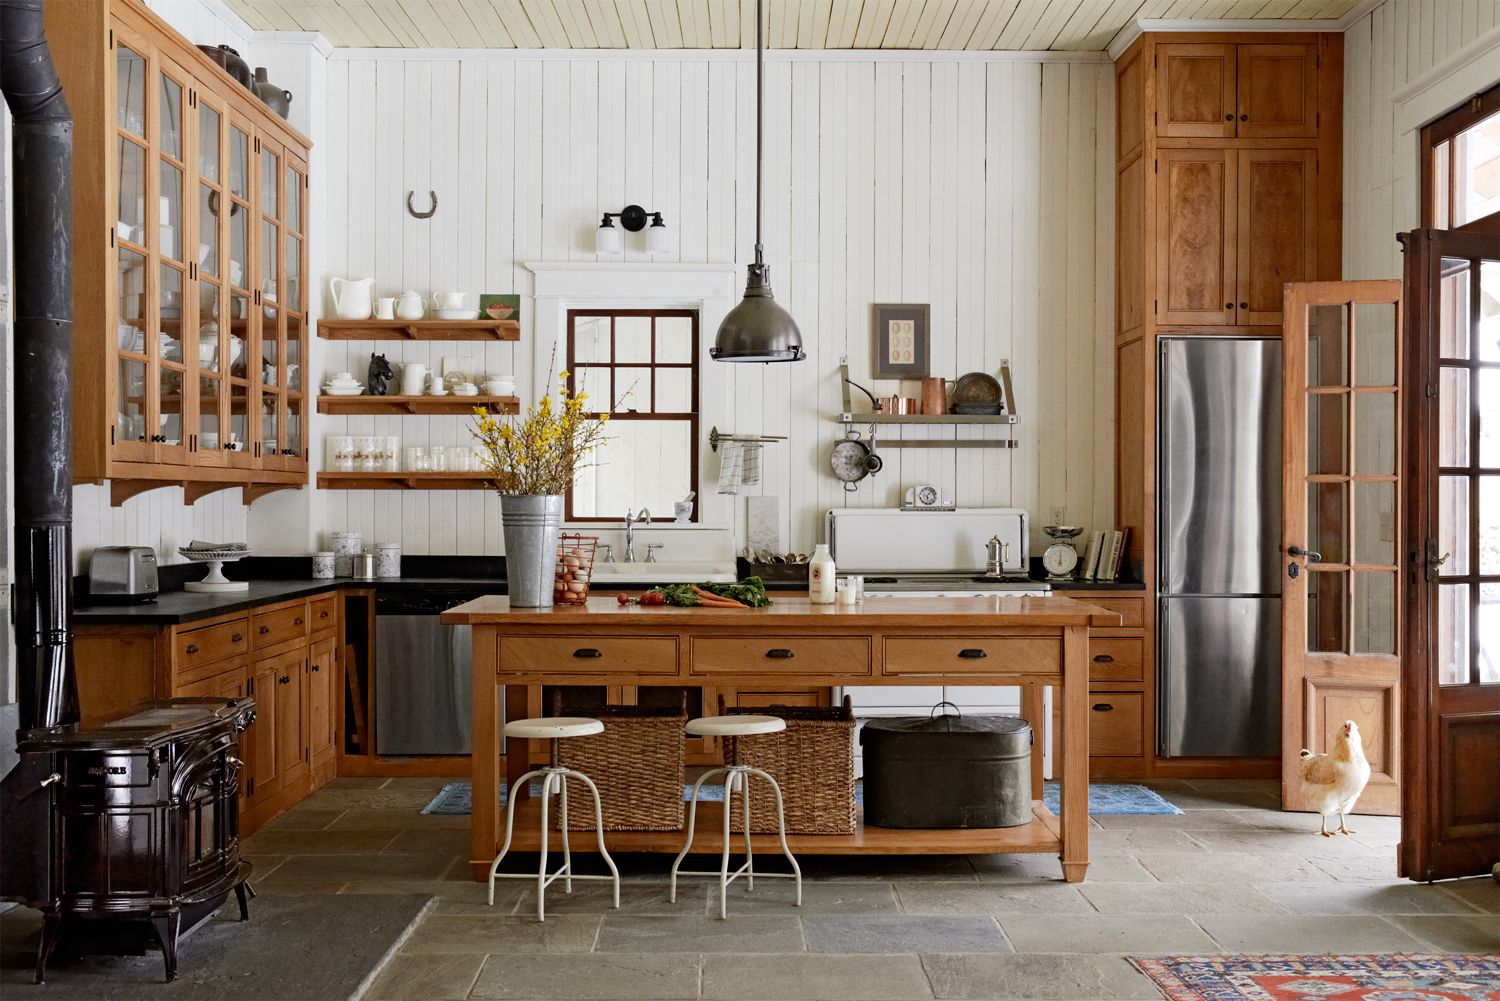 Retro and Vintage Kitchen Table